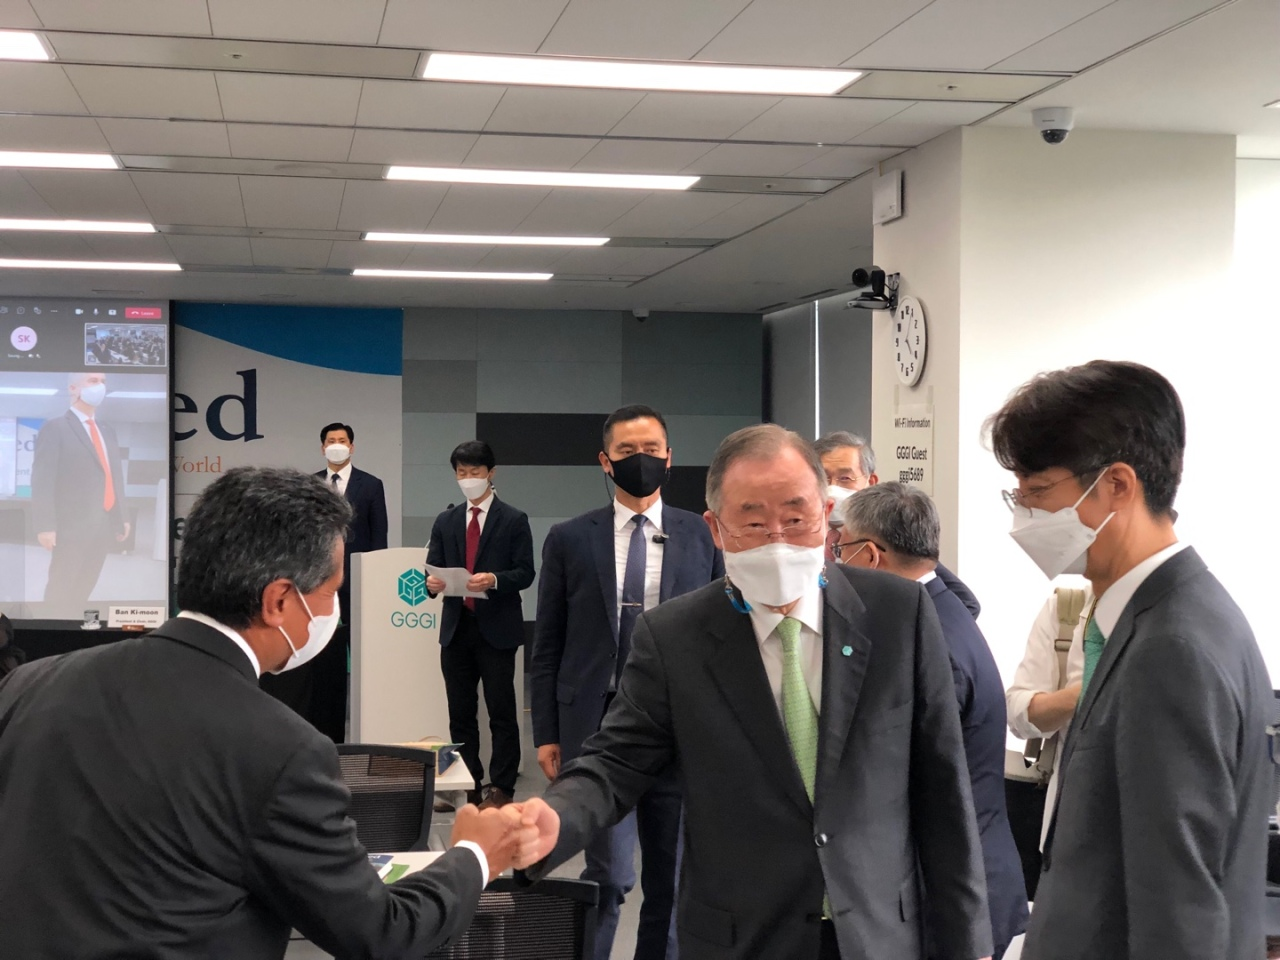 Ban Ki-moon fist-bumps attendees at his book launch ceremony at the GGGI headquarters in central Seoul on Thursday. (Sanjay Kumar/The Korea Herald)